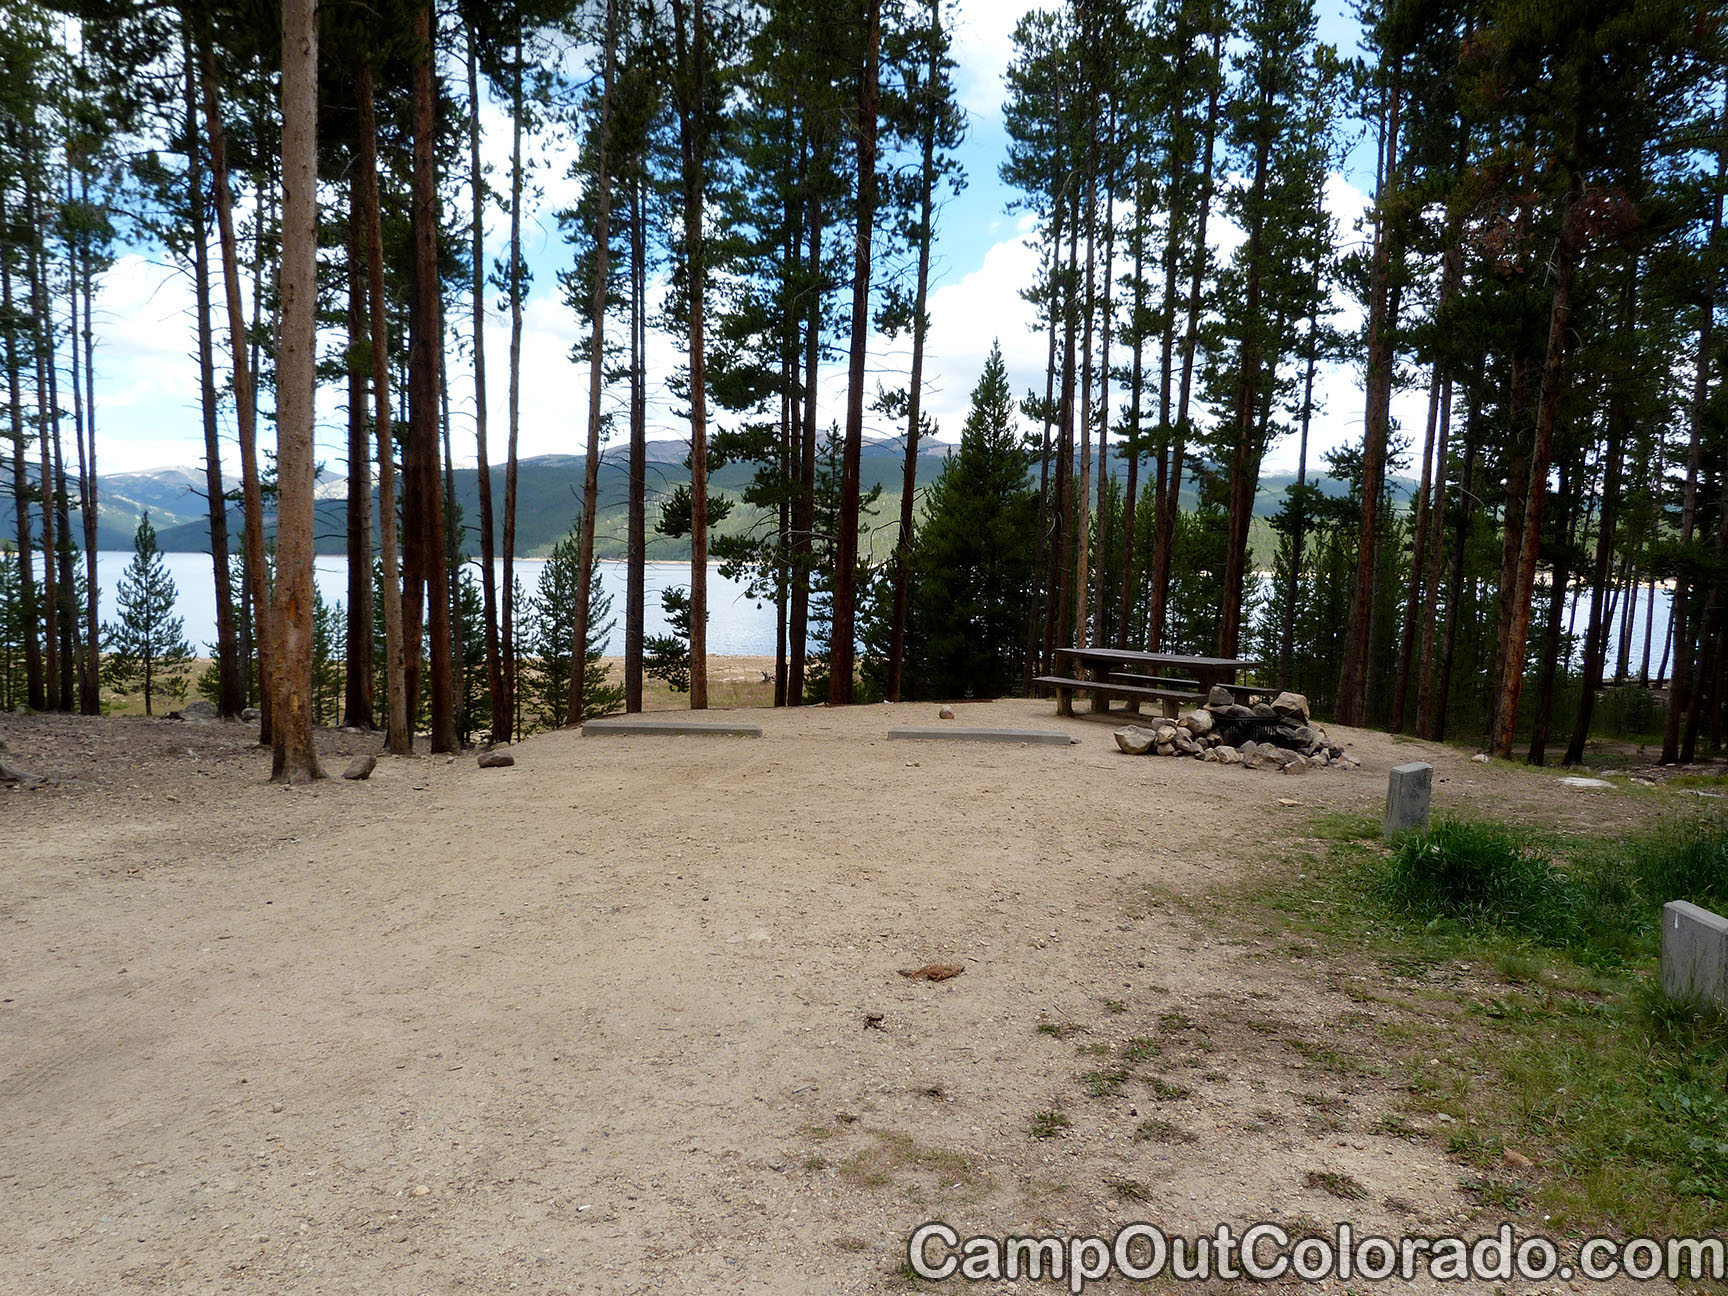 Camp-out-colorado-molly-brown-turquoise-lake-windy